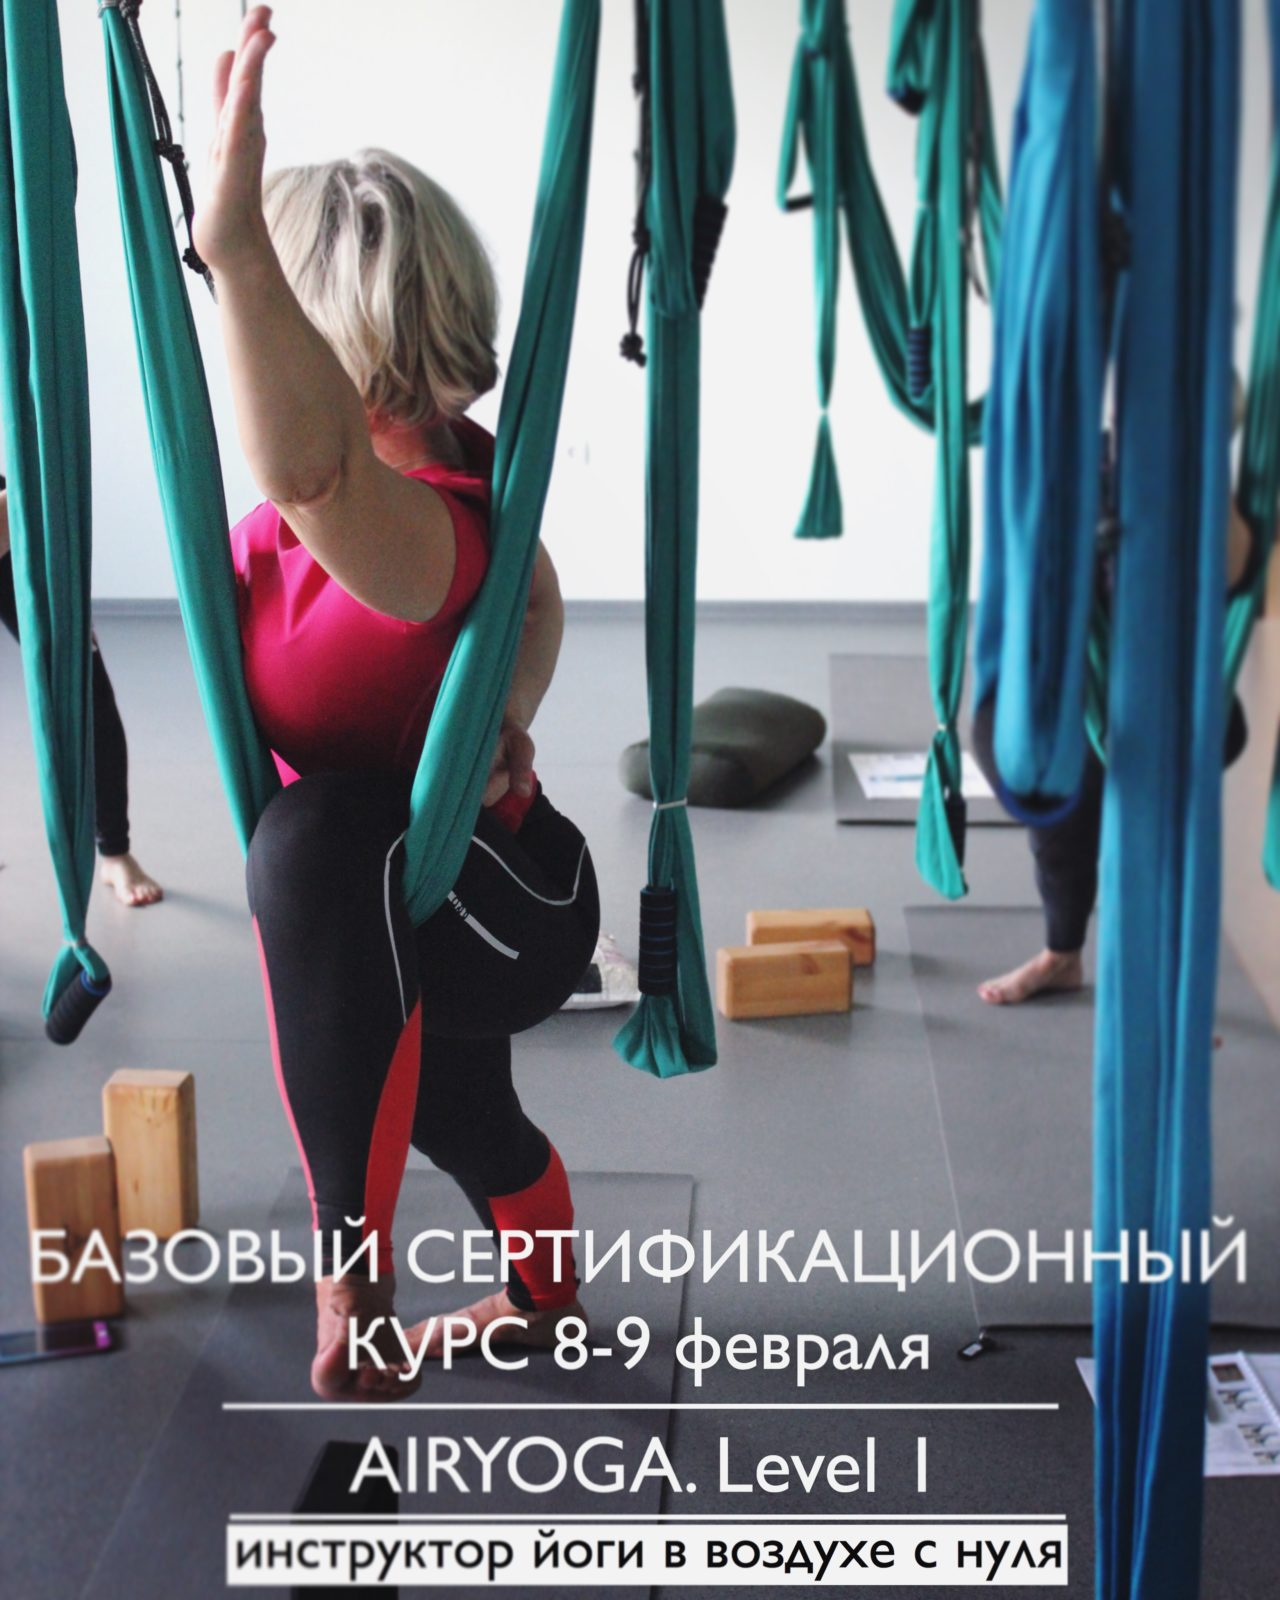 https://yoga8.by/wp-content/uploads/2019/10/img_3124-20-01-20-04-34-1280x1600.jpg